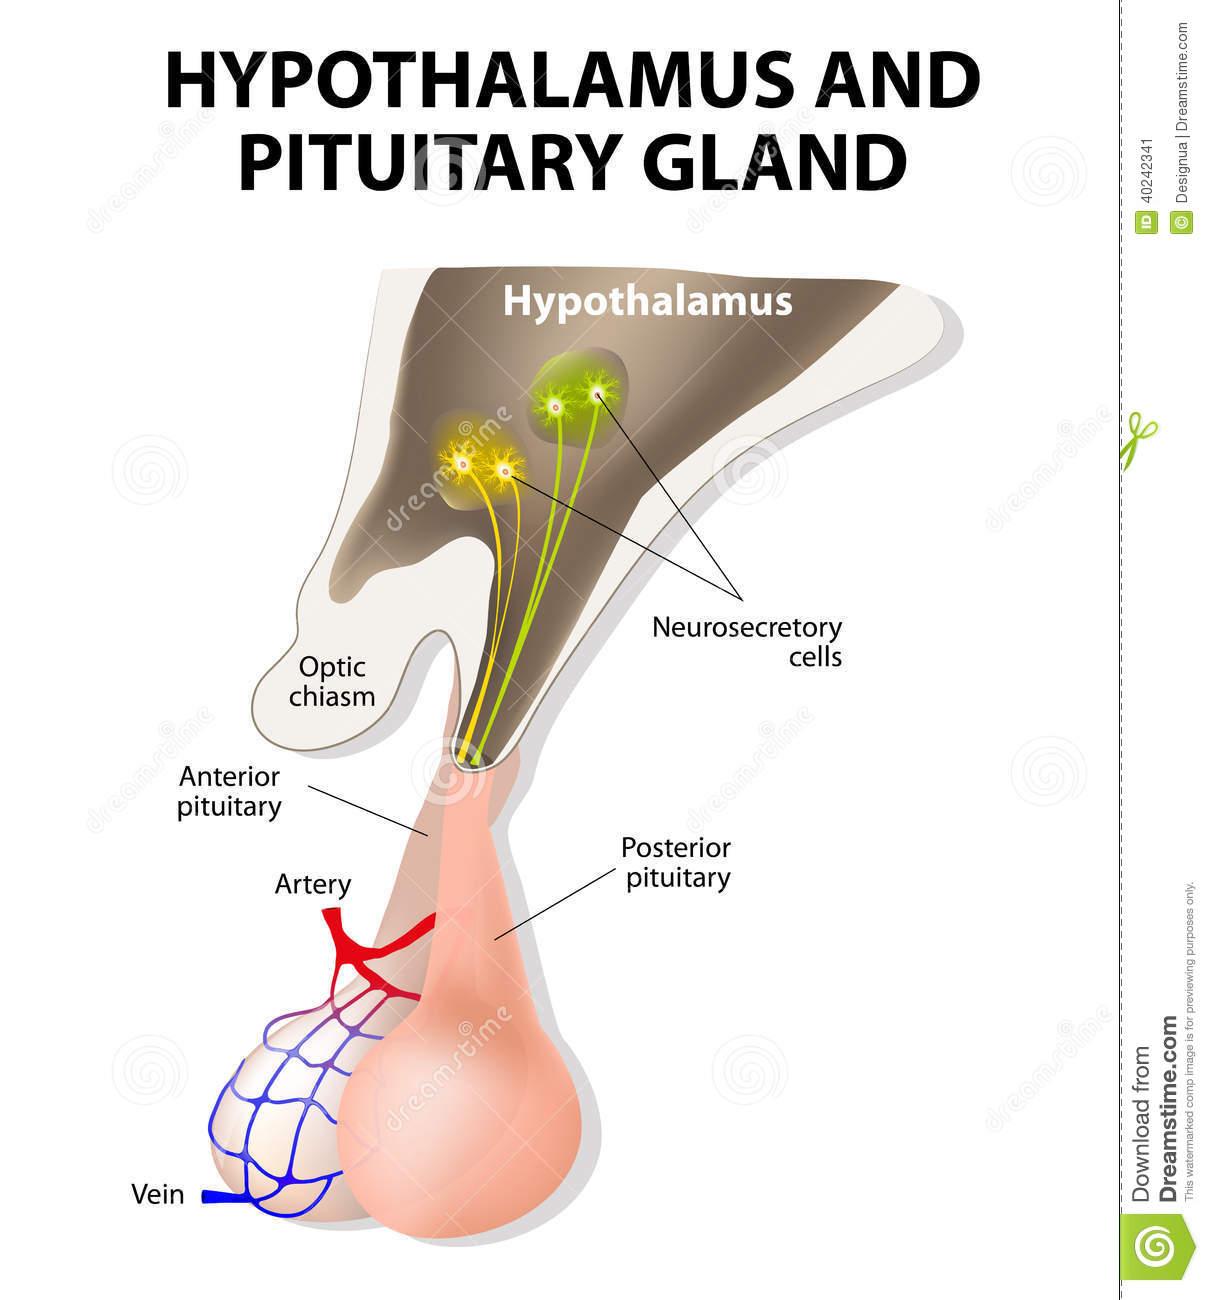 Hypothalamus And Pituitary Gland Stock Vector - Illustration of ...